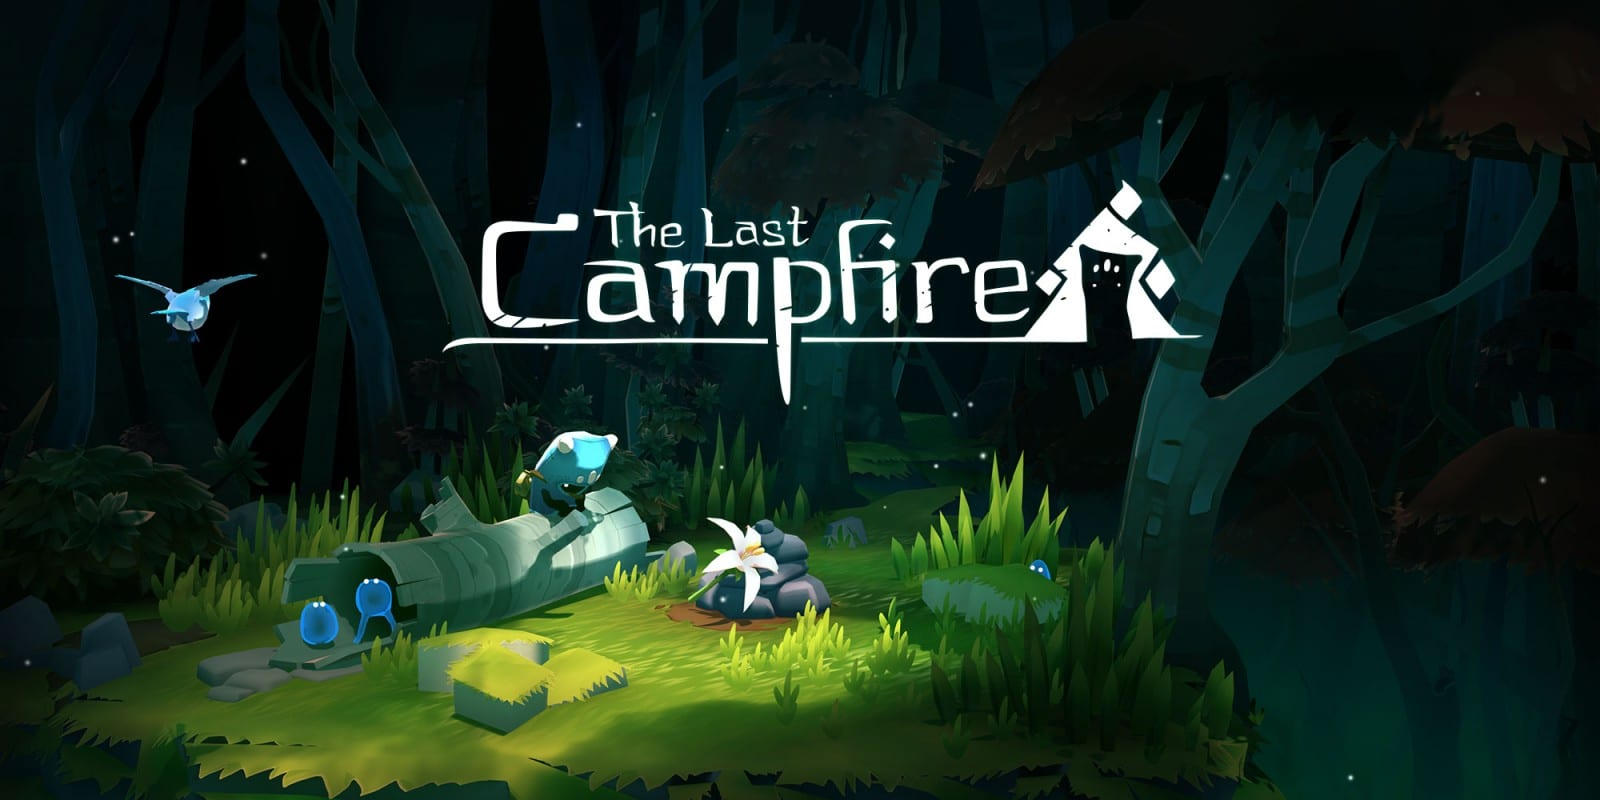 The Last Campfire – Gameplay footage